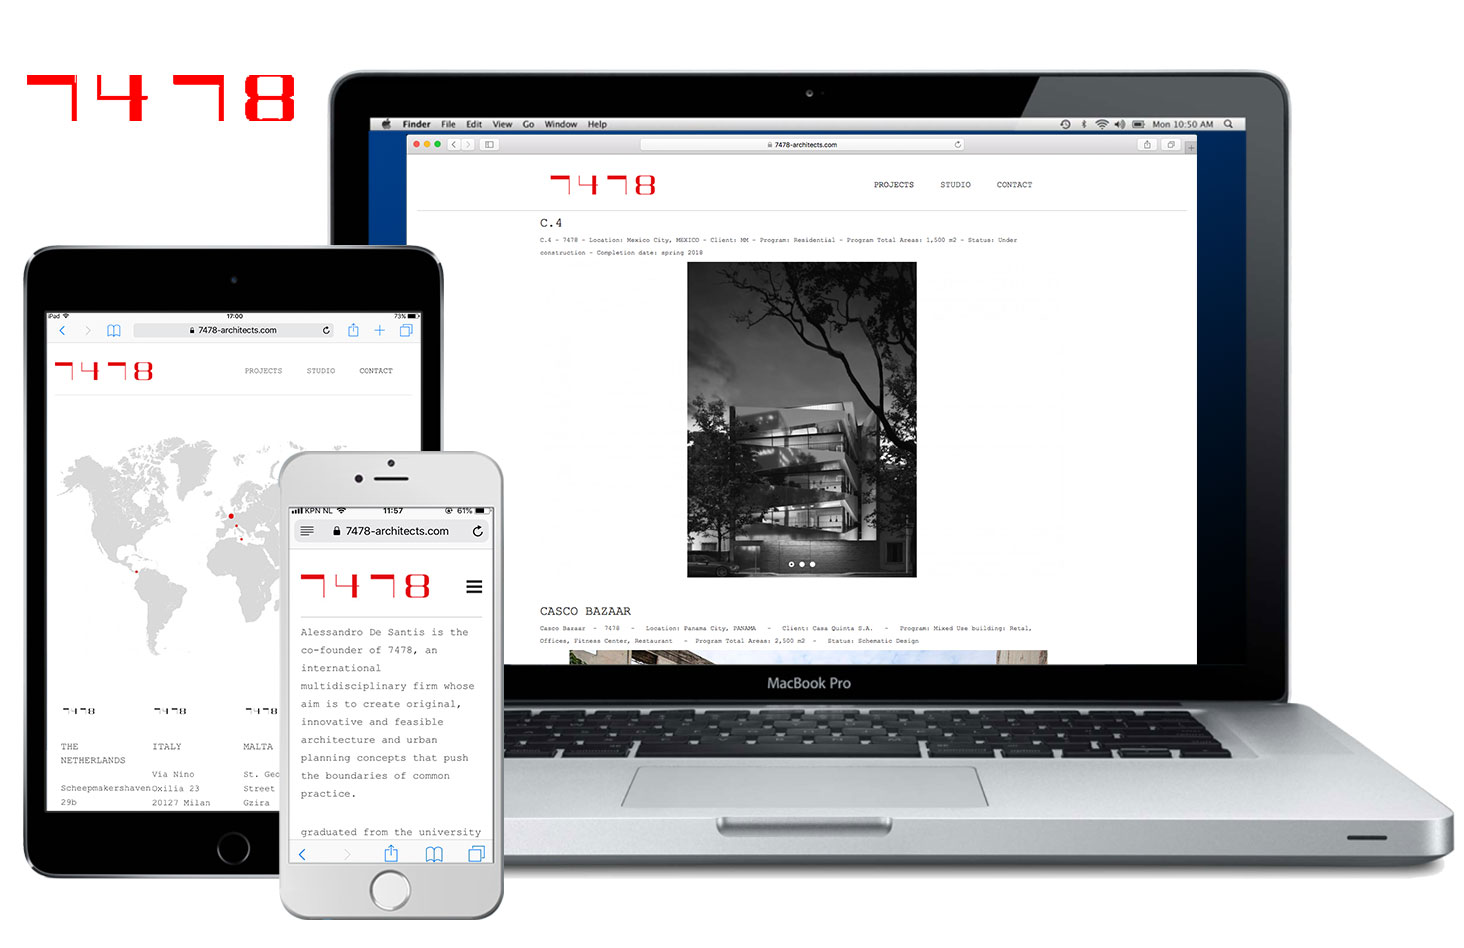 7478-architects-website-macbook-ipad-iphone